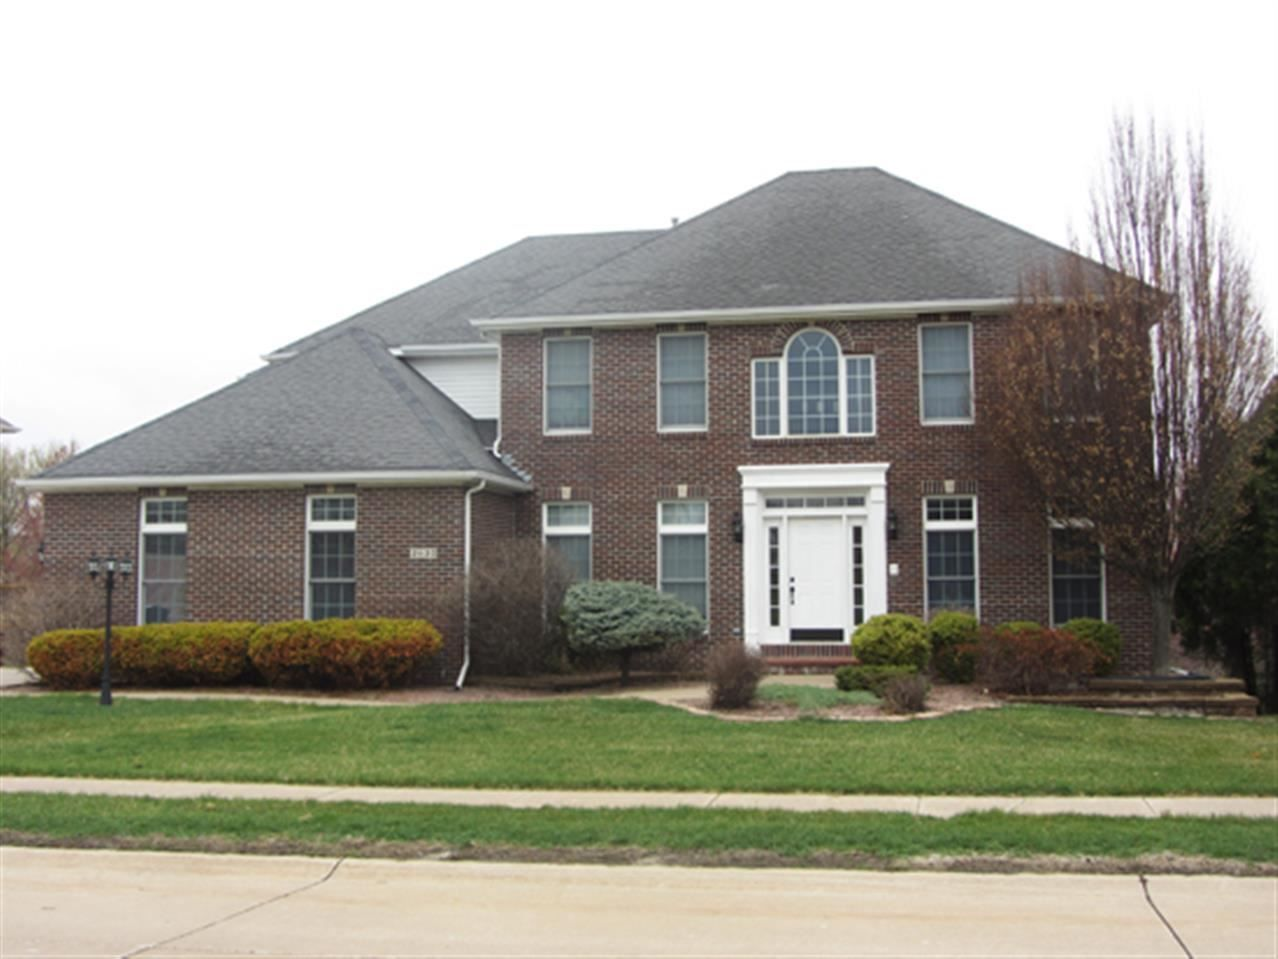 Bettendorf Iowa Real Estate For Sale Stately Brick Home With A